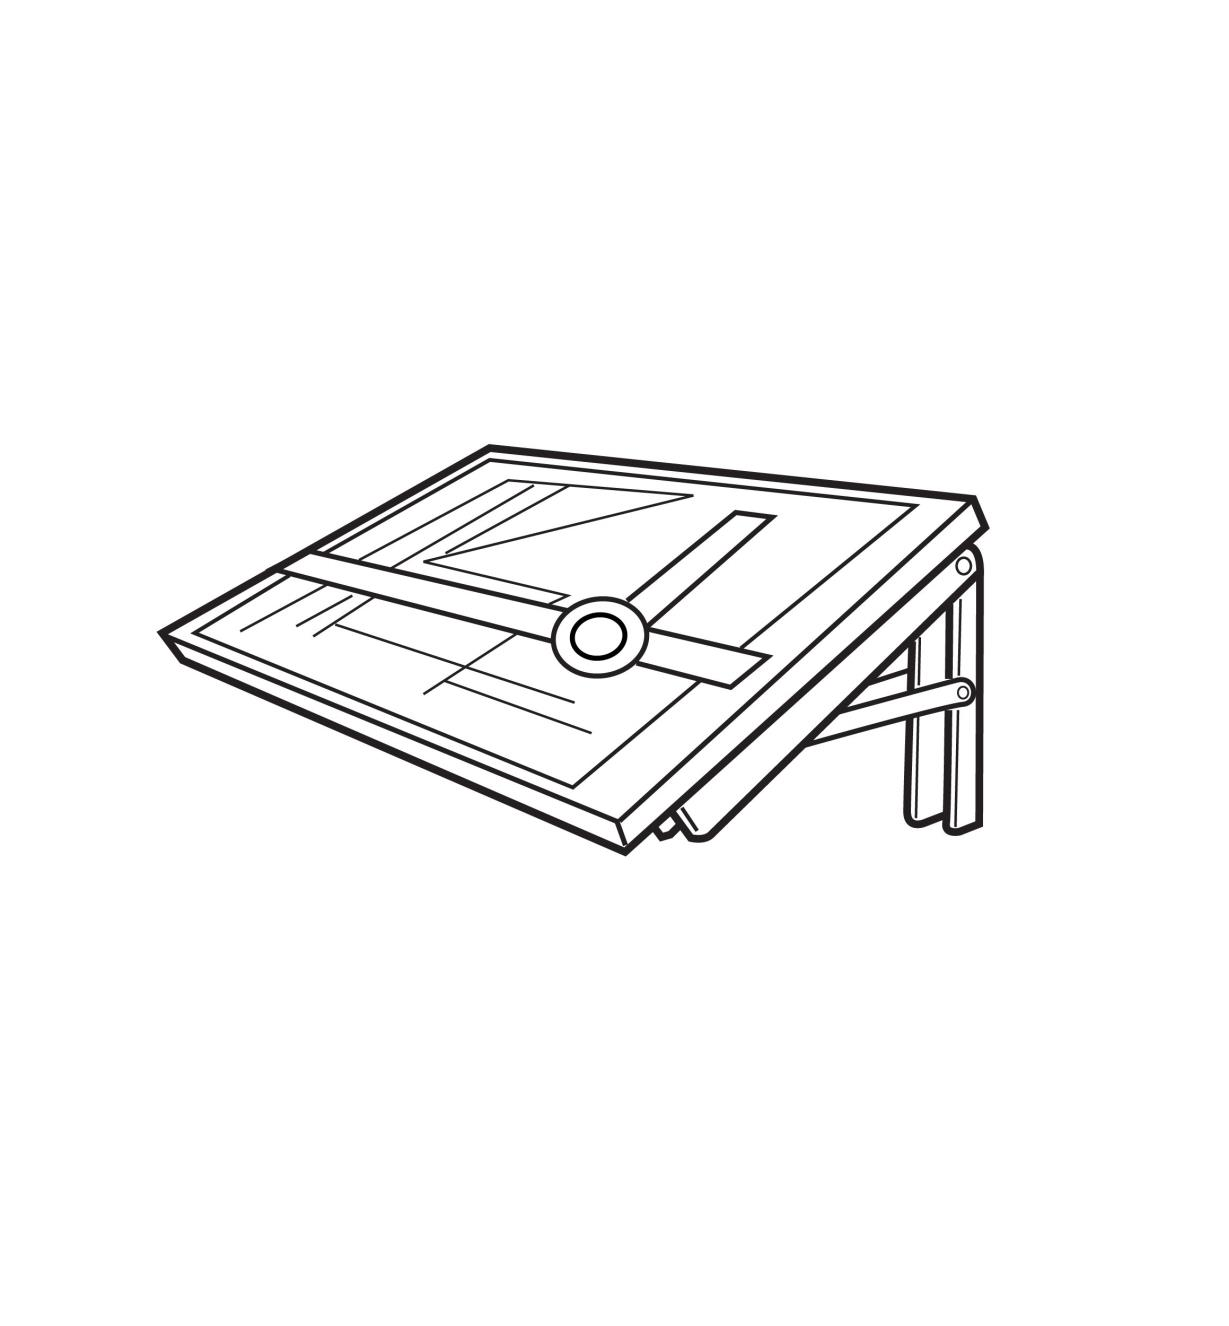 Illustrated example of fold-away drafting table set at 70°